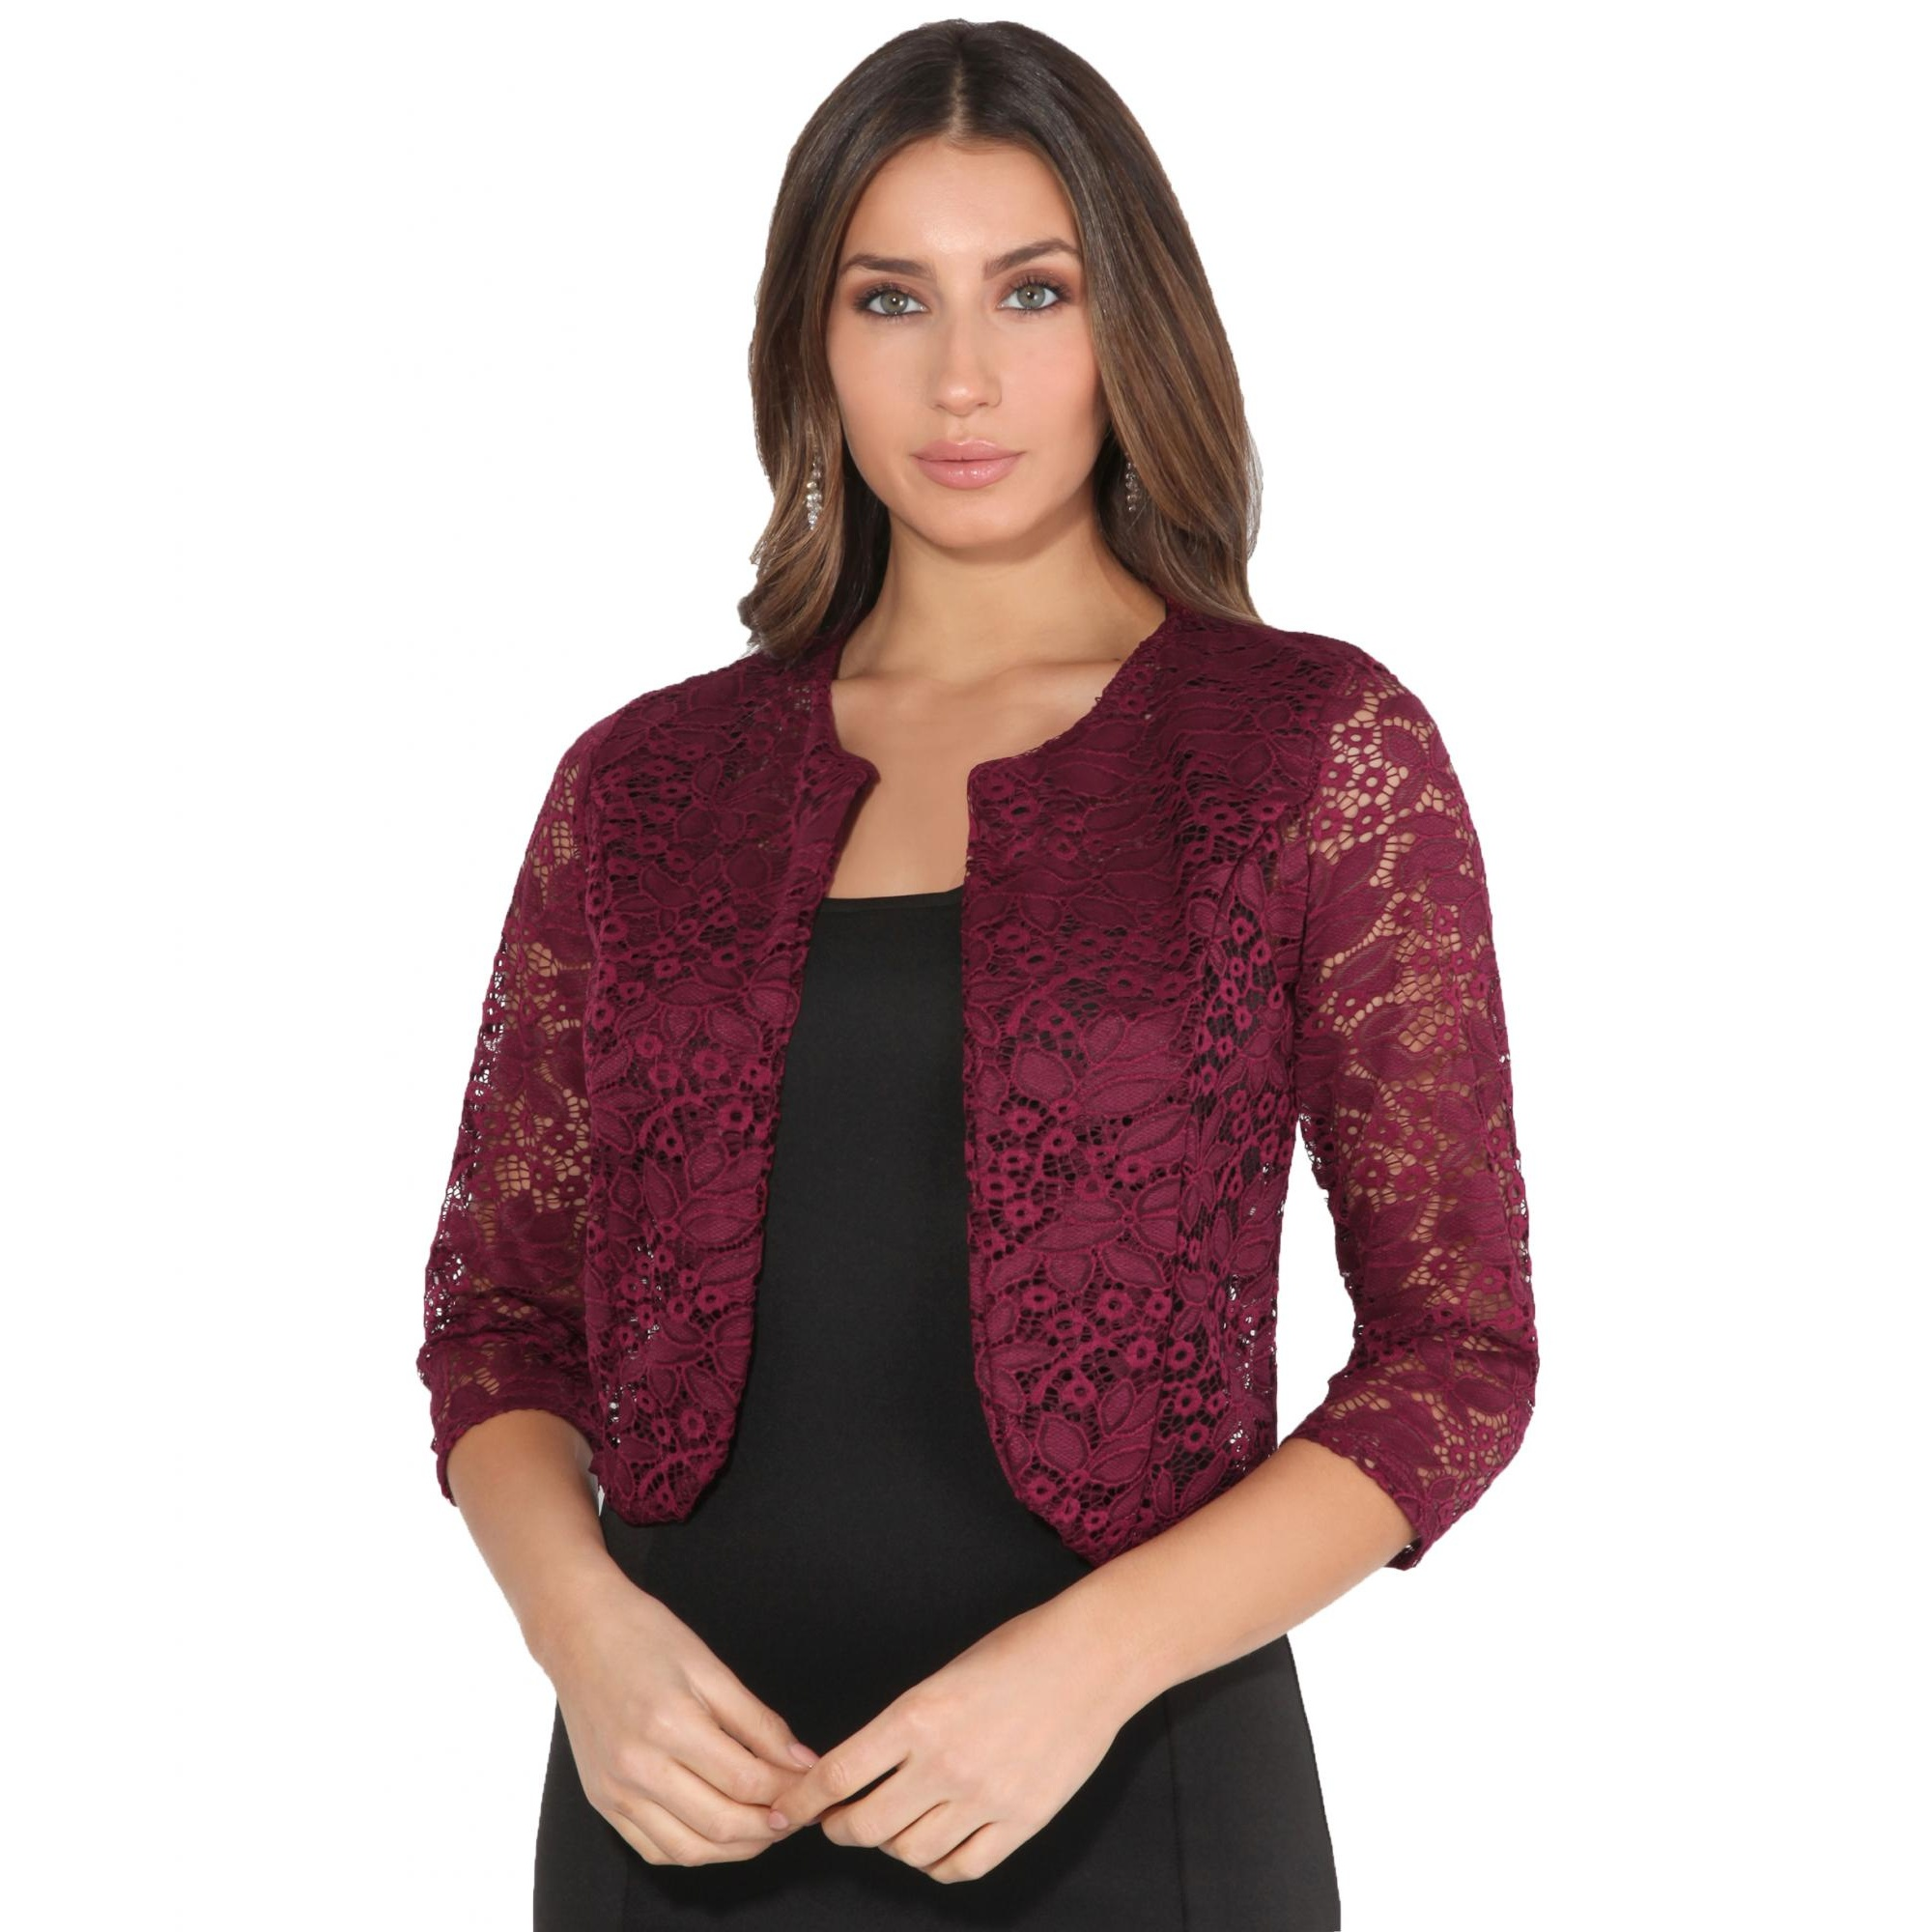 Krisp Womens/Ladies All Over Lace Cropped Evening Shrug (S/M) (Periwinkle)